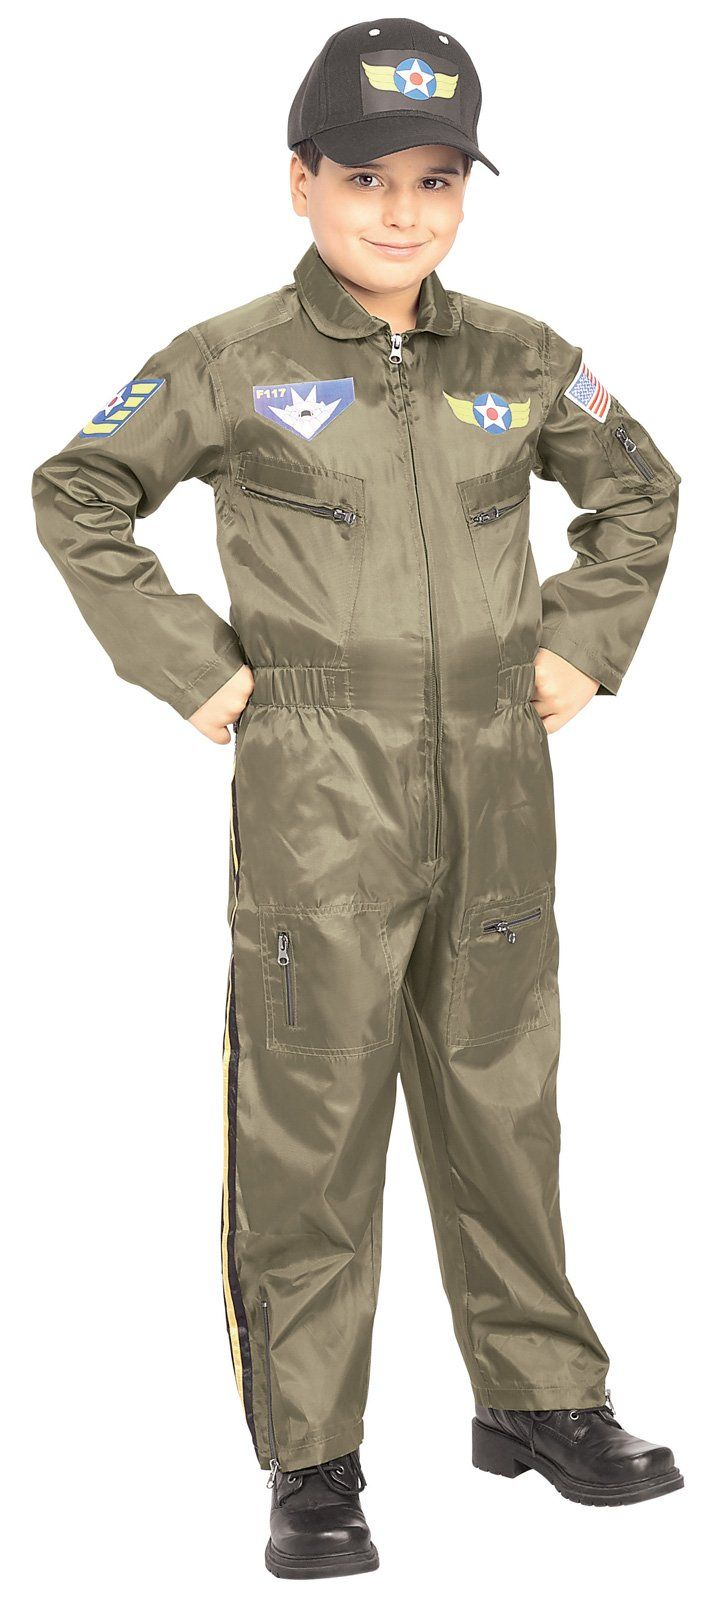 Awesome Costumes Air Force Pilot Costume just added...